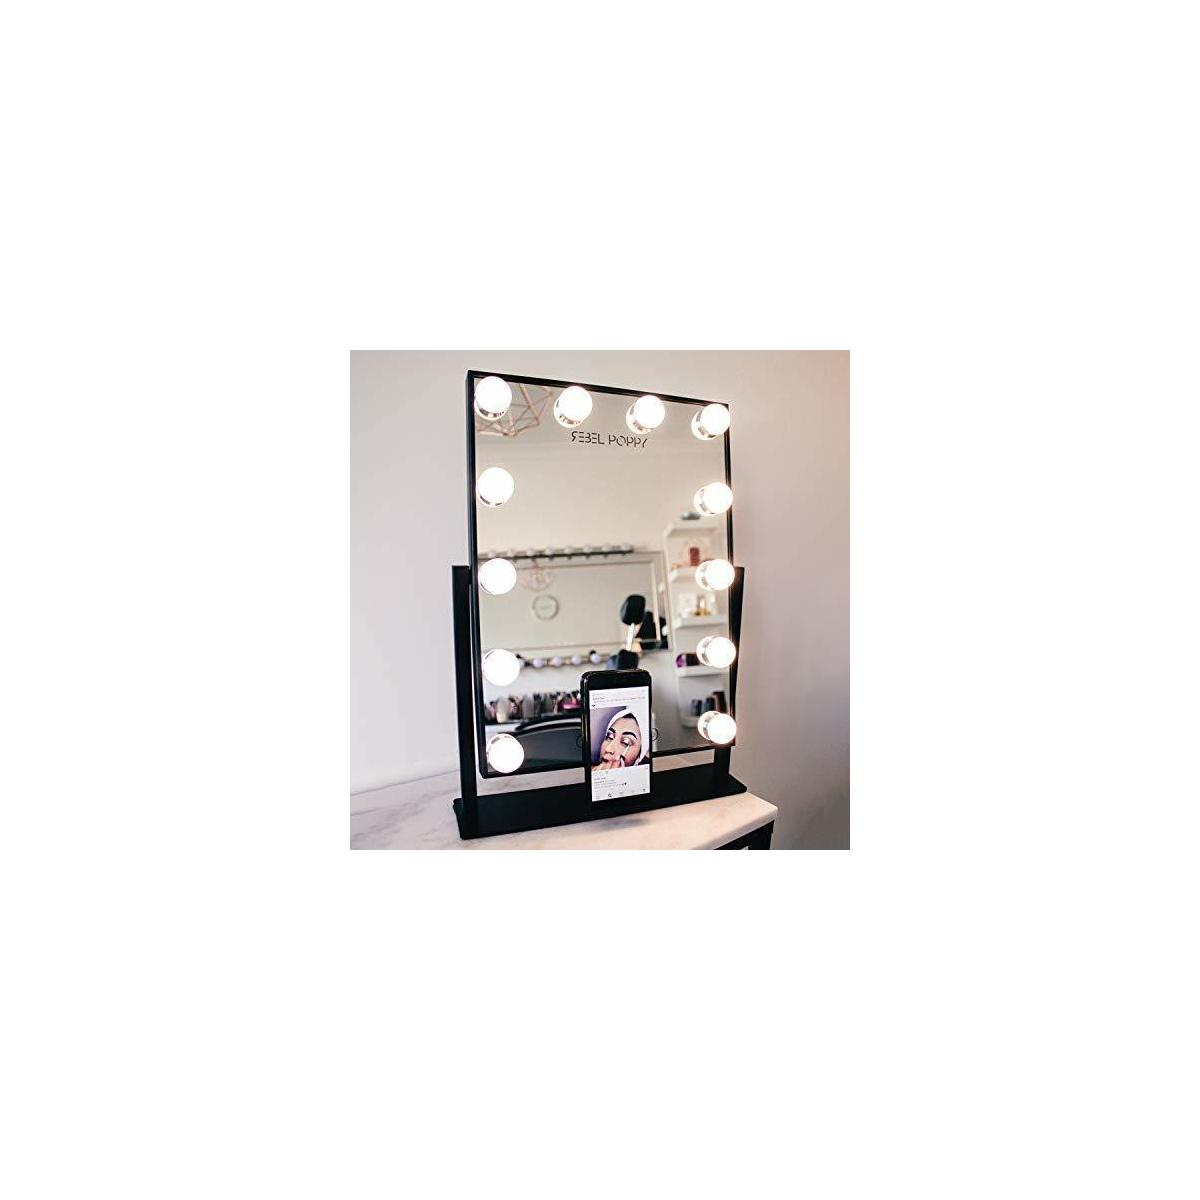 Rebel Poppy Vanity Mirror with Lights - Phone Holder and 3 Colour Touch Control, Hollywood Style Vanity Mirror, Replaceable and Dimmable LED Bulbs - Rebate for Black Color only